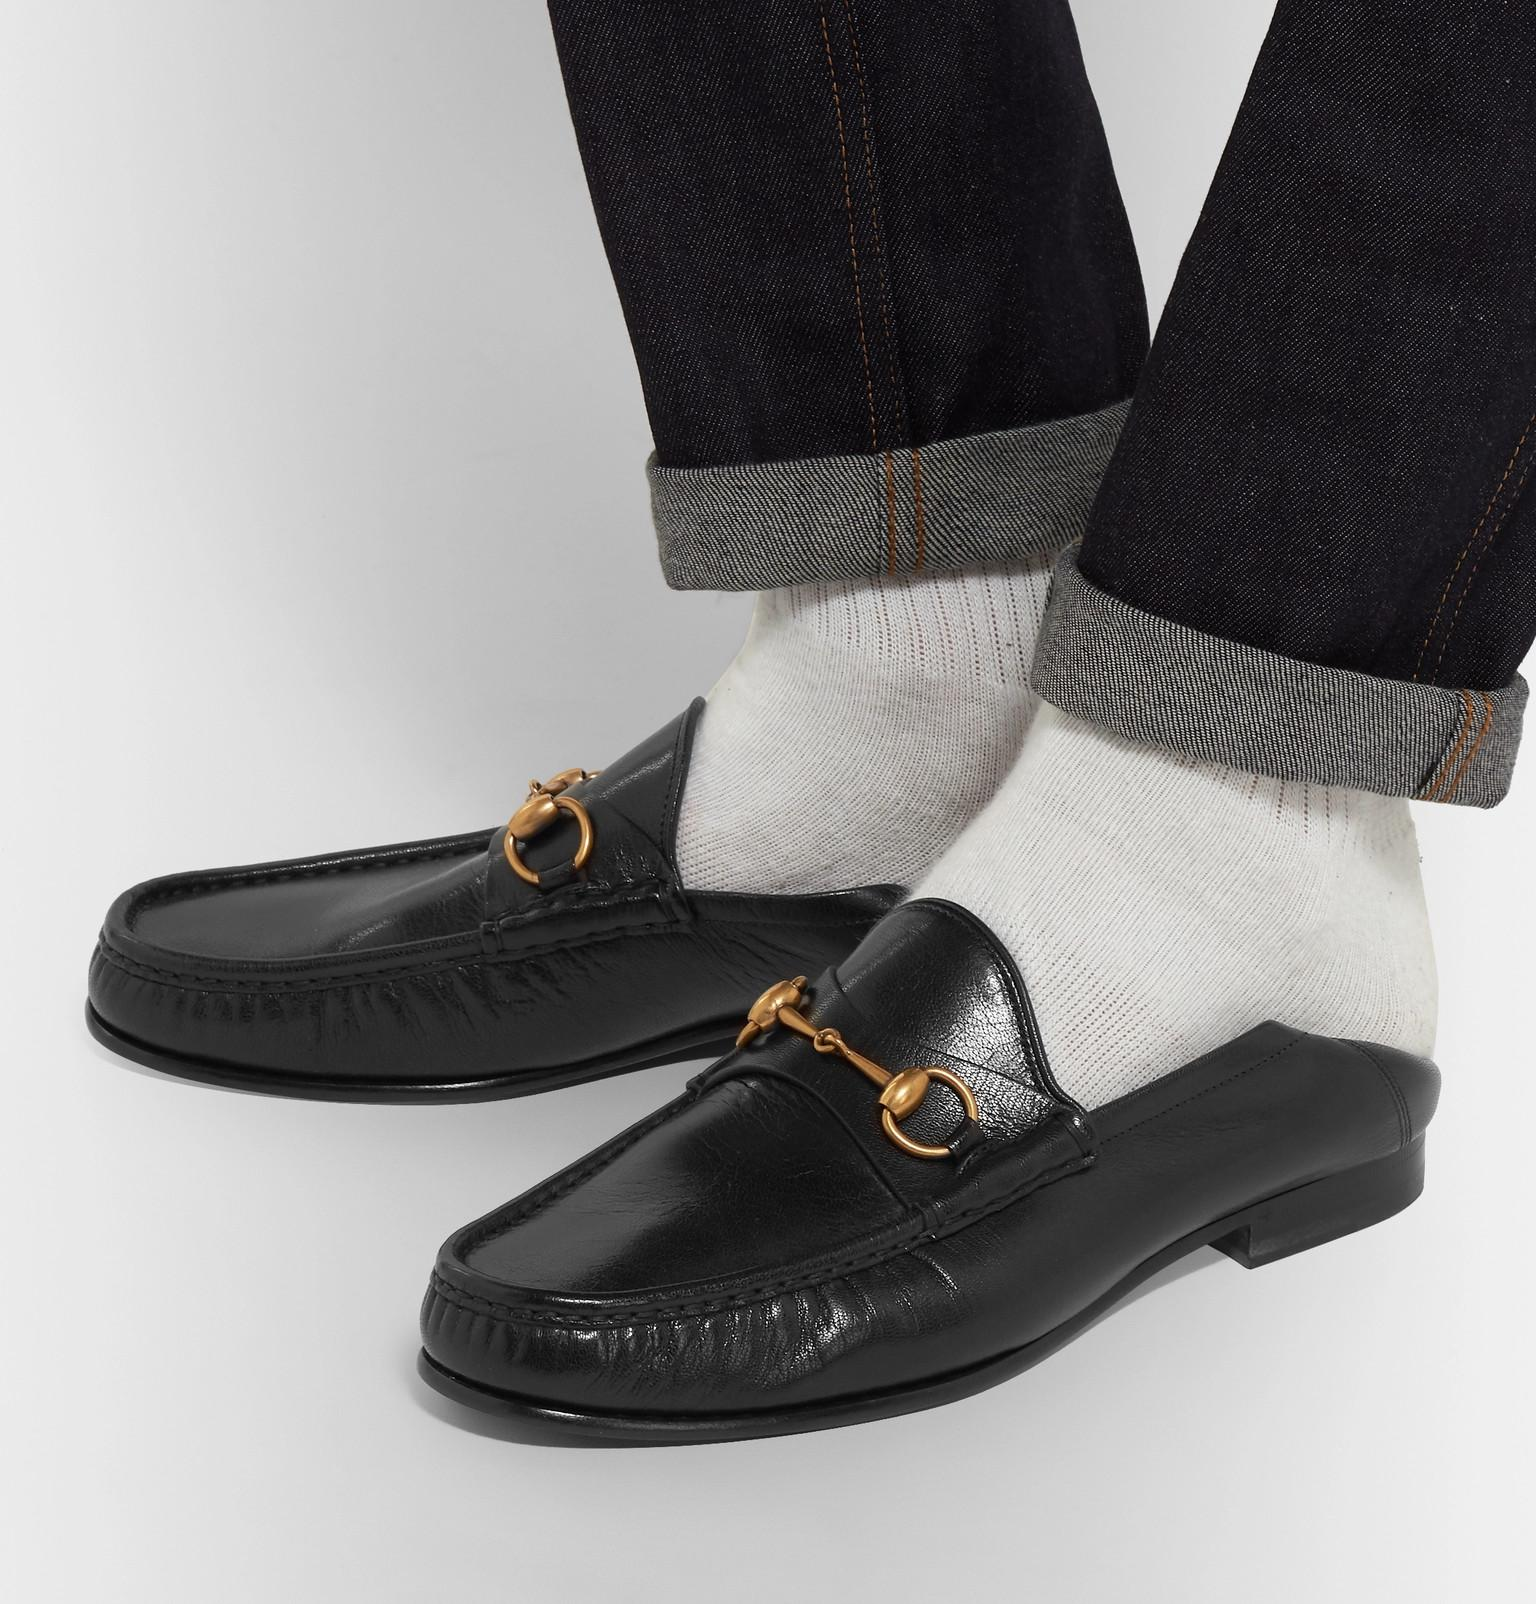 4e36d49f132 Gucci Easy Roos Horsebit Collapsible-heel Leather Loafers in Black ...